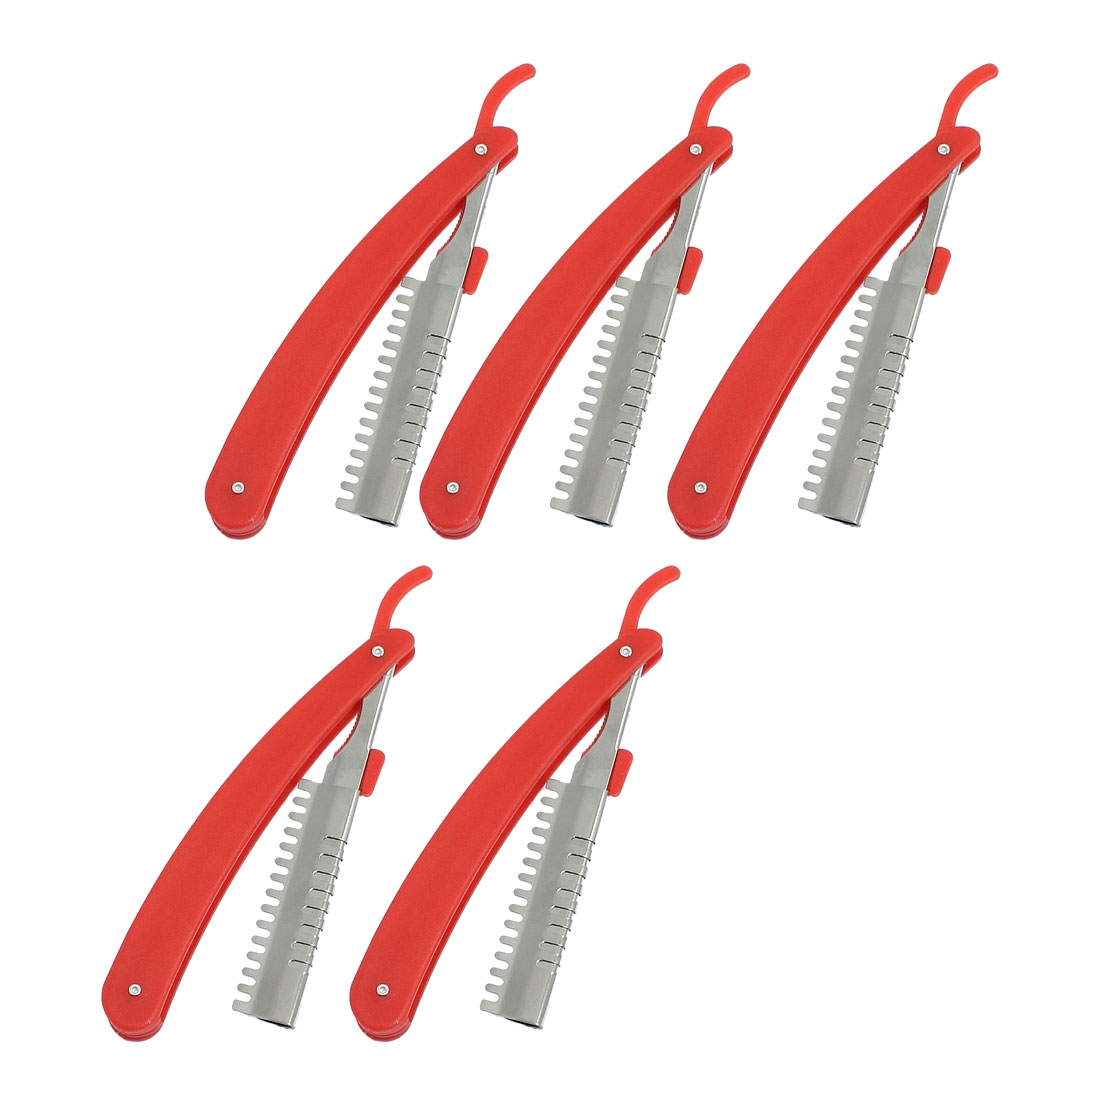 5 Pcs Hair Hairstyle Comb Razor Trimmer Cutter Holder